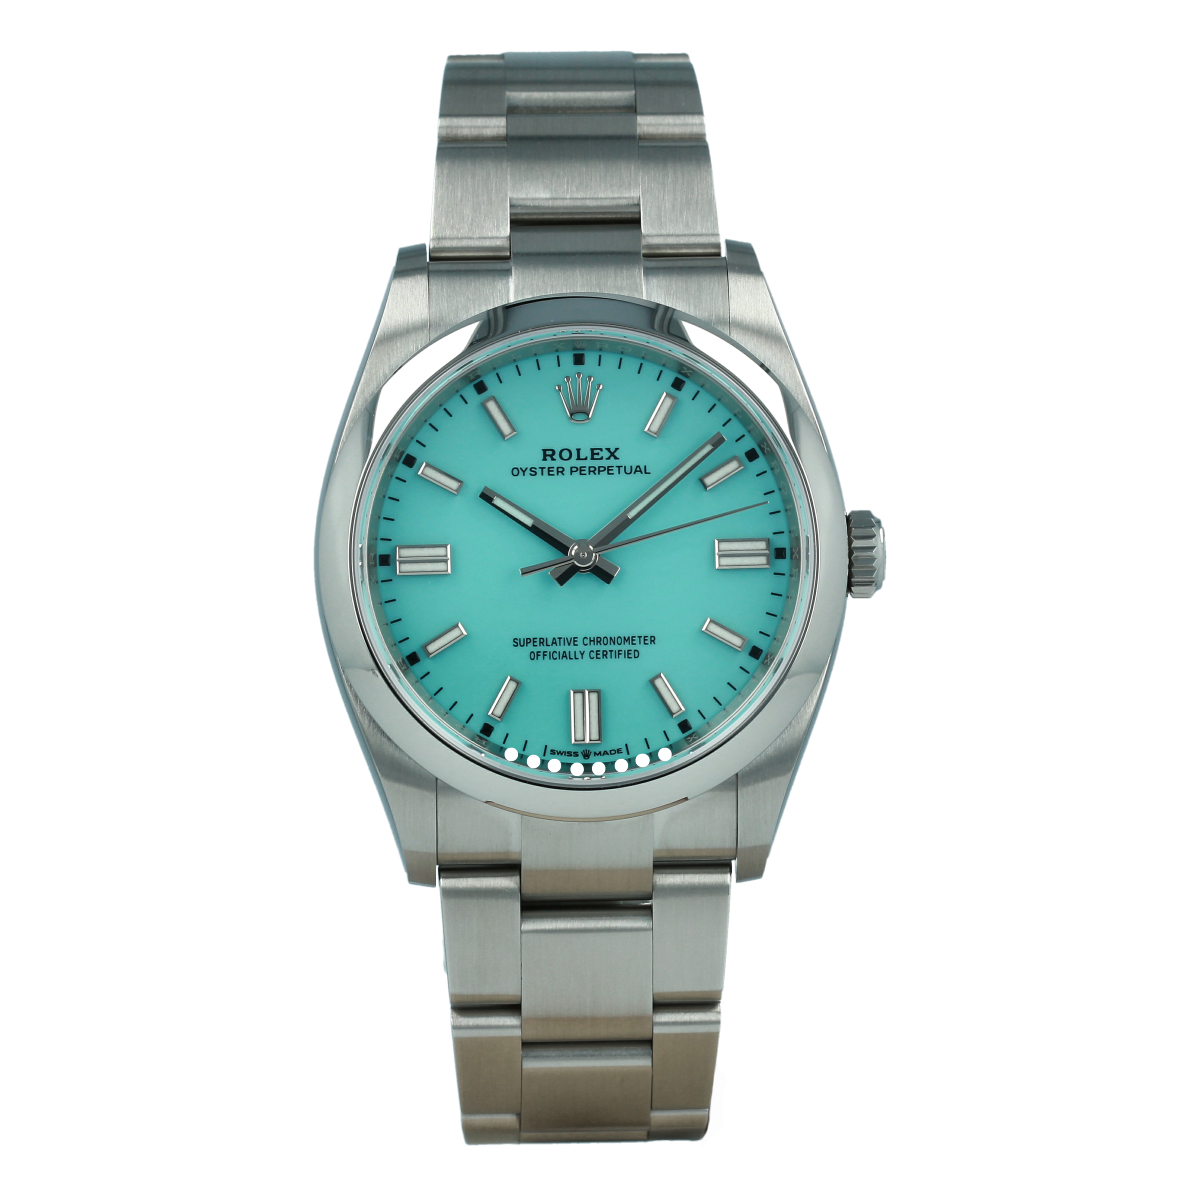 Rolex Oyster Perpetual 126000 36mm Turquoise Dial *New Model* | Buy pre-owned Rolex watch